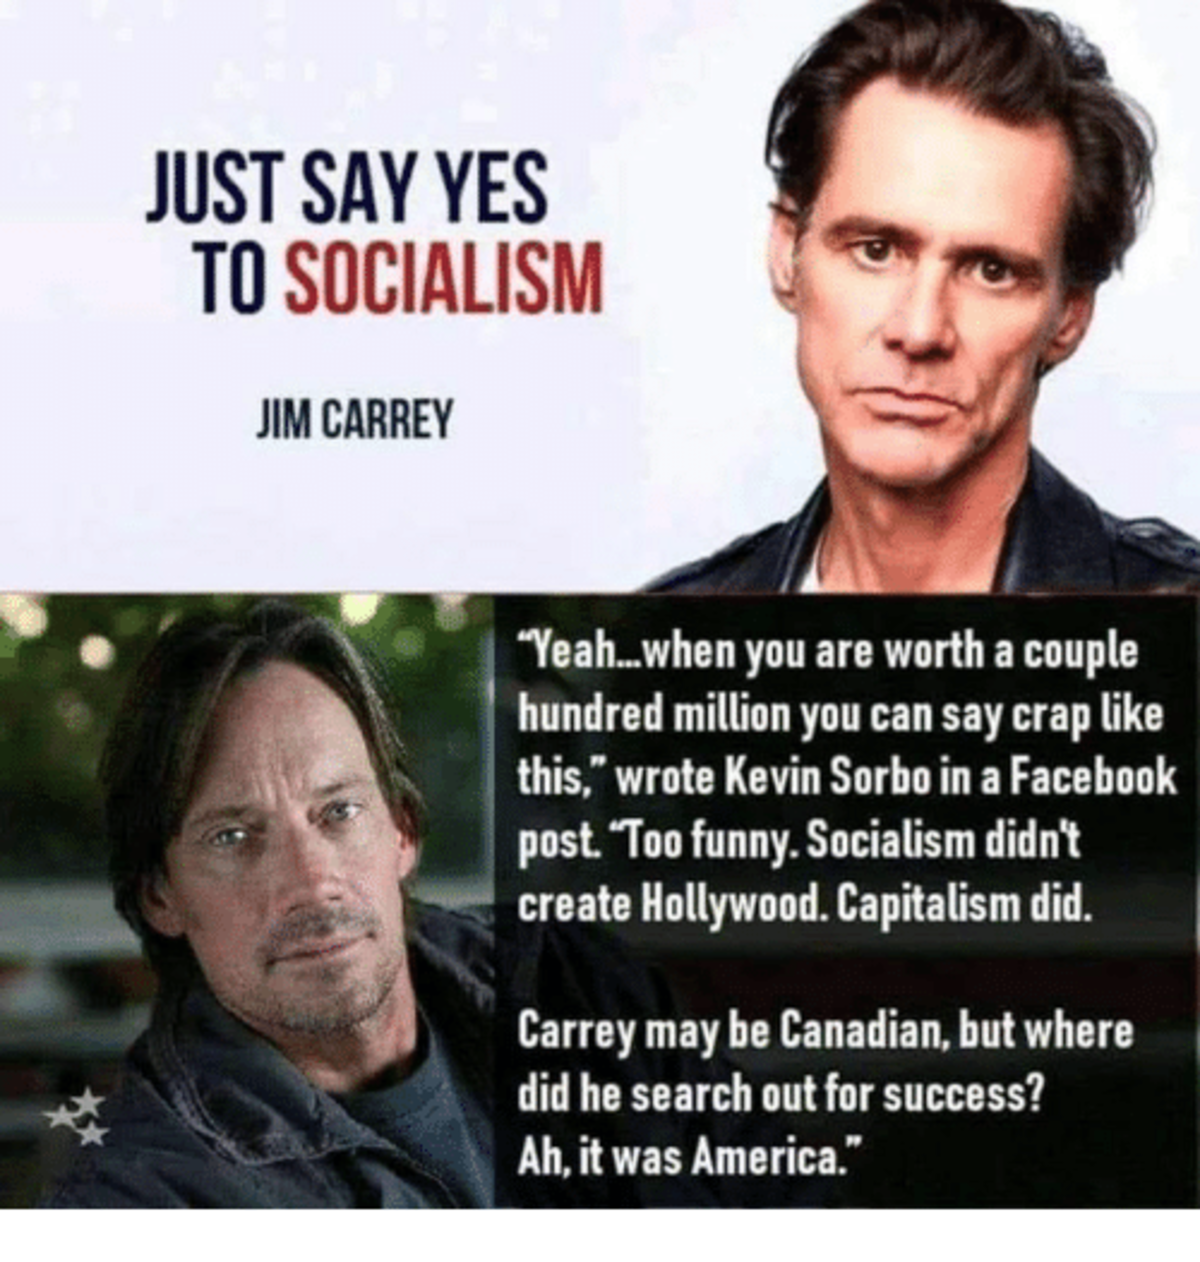 Based Hercules. .. I know actors are generally terrible people, but ole Carrey has just been the cream of the nightmare crop lately. Who died and made him Satan?